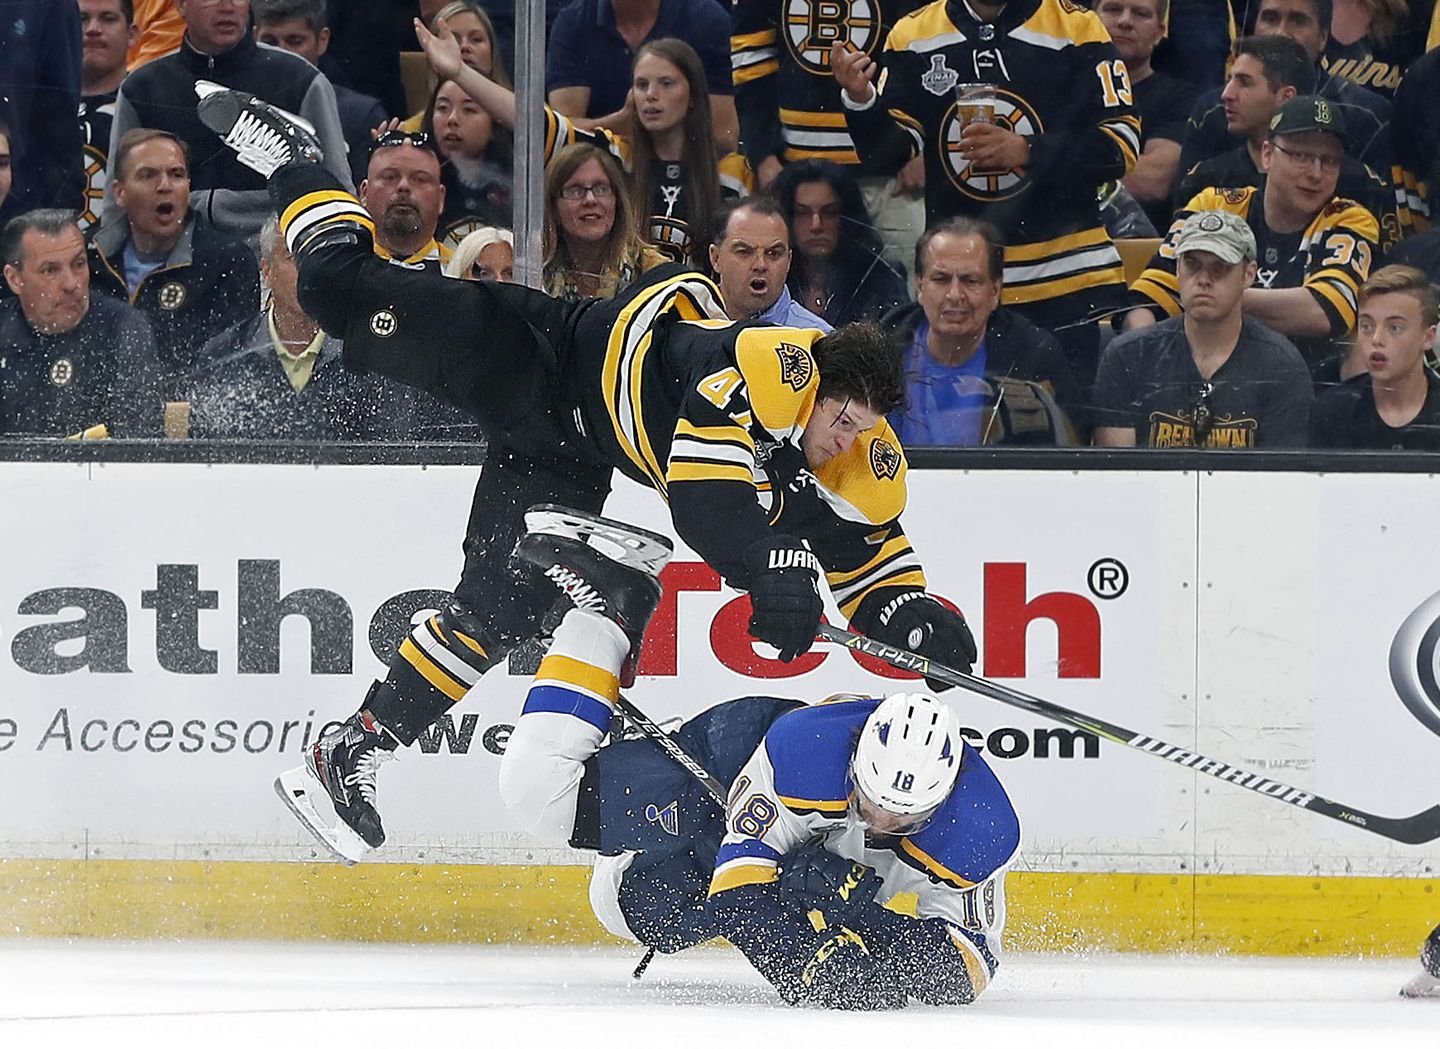 Don T Make That Guy Mad Torey Krug S Hit Exemplified The Bruins Night The Boston Globe